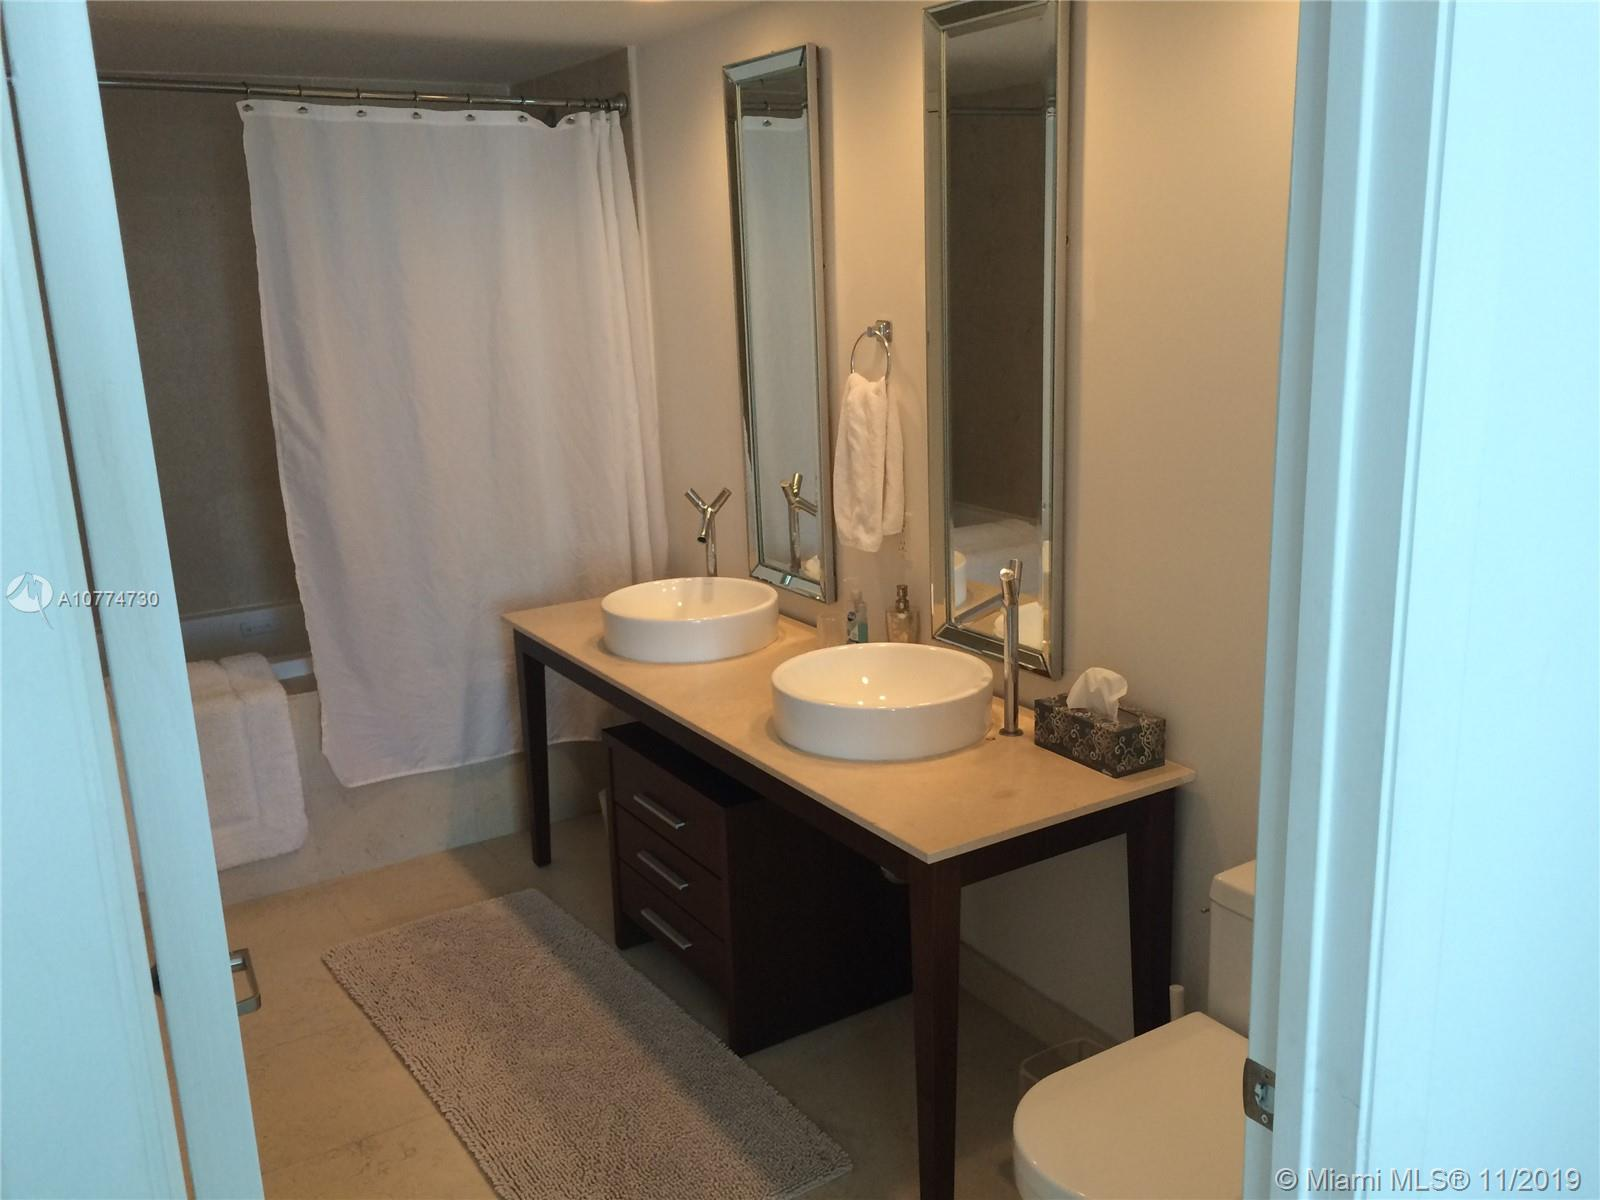 485 Brickell Ave # 2207, Miami, Florida 33131, 1 Bedroom Bedrooms, ,1 BathroomBathrooms,Residential,For Sale,485 Brickell Ave # 2207,A10774730